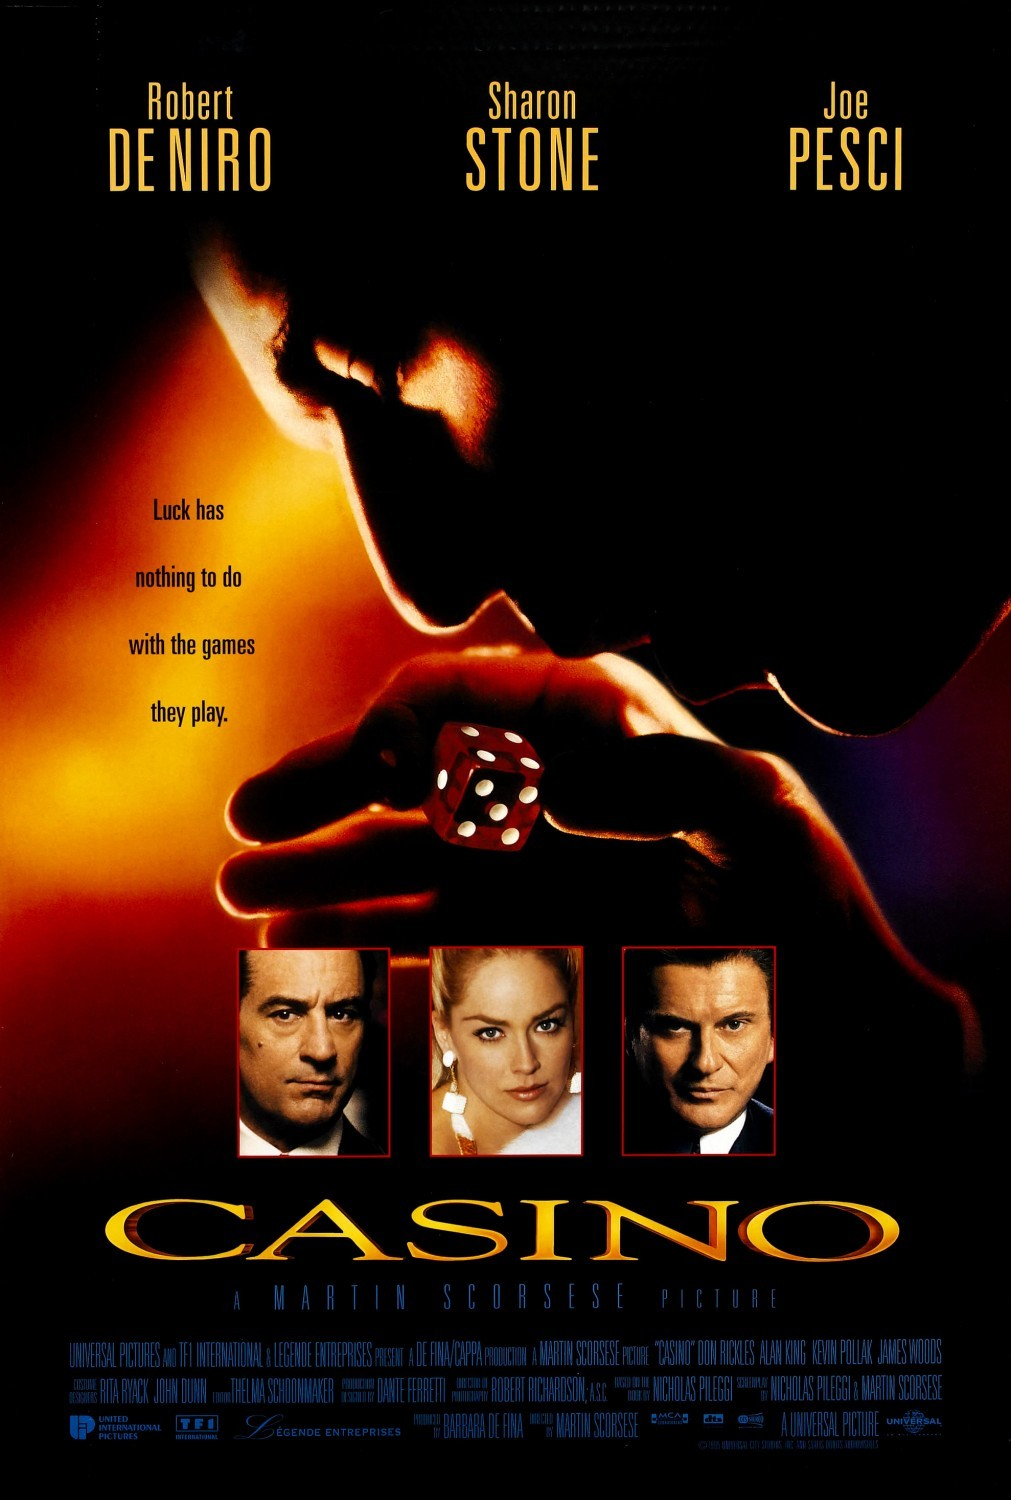 CASINO [Week Long Engagement]